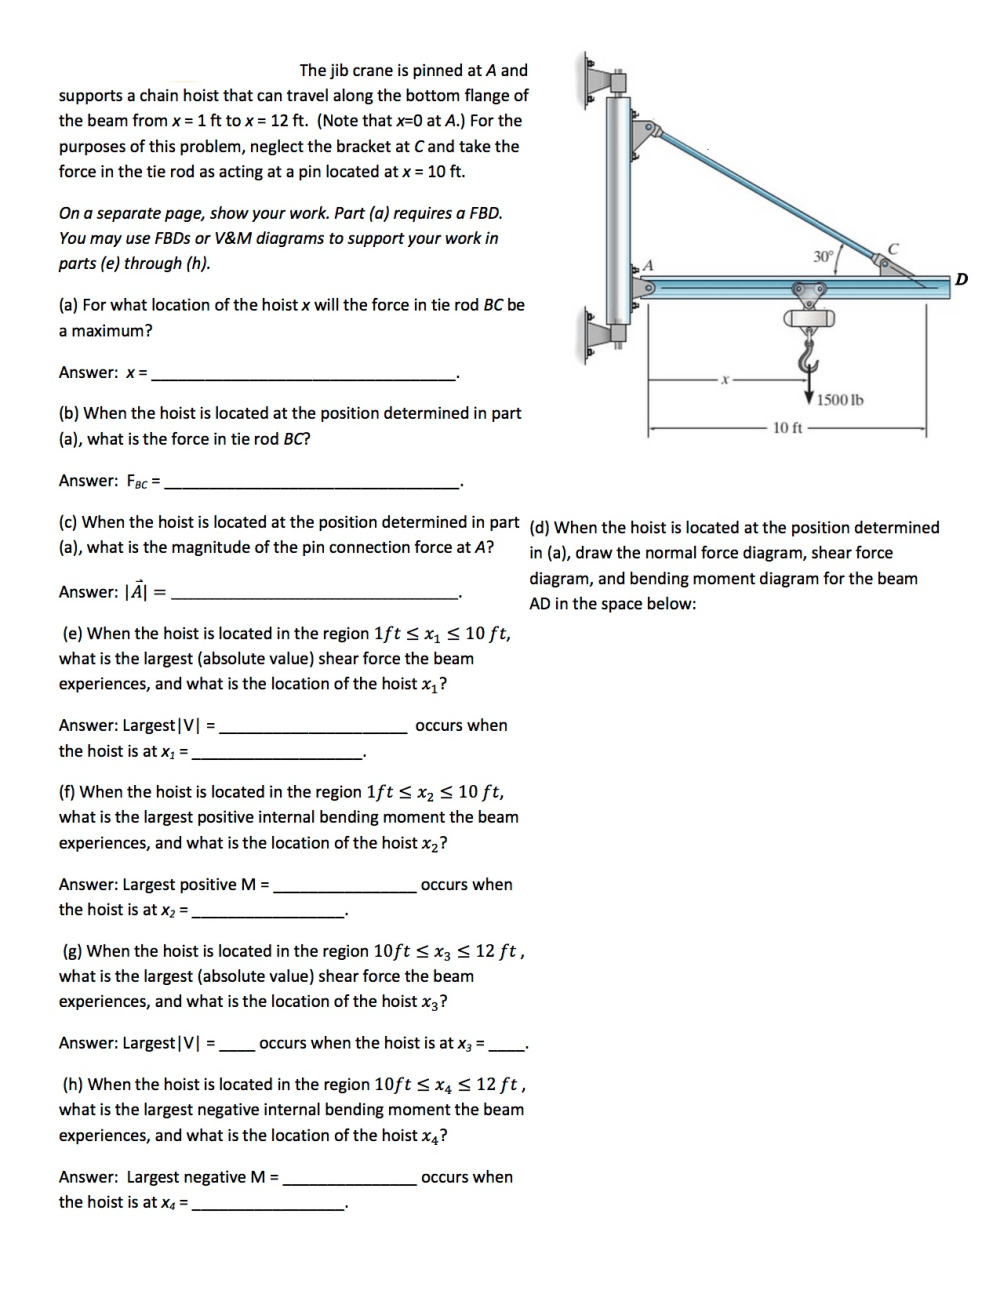 medium resolution of image for the jib crane is pinned at a and supports a chain hoist that can